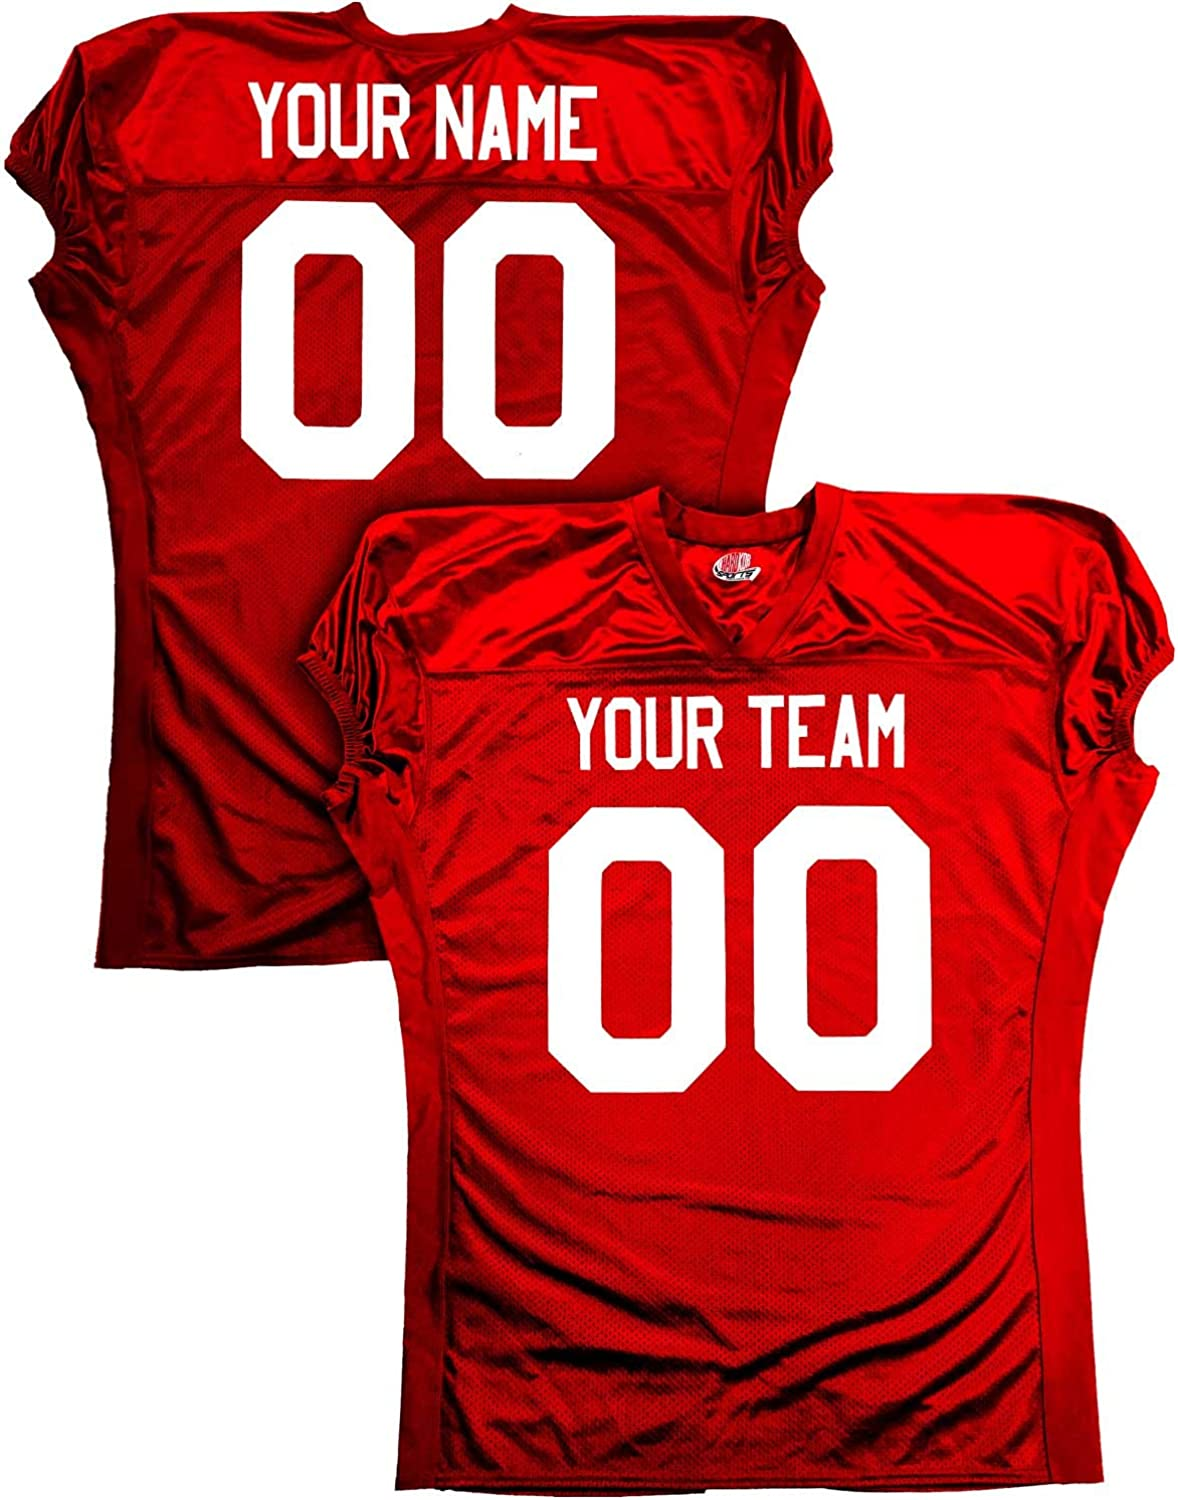 Crunch Time Classic Custom Football Jersey Customized Fully with Names cheap